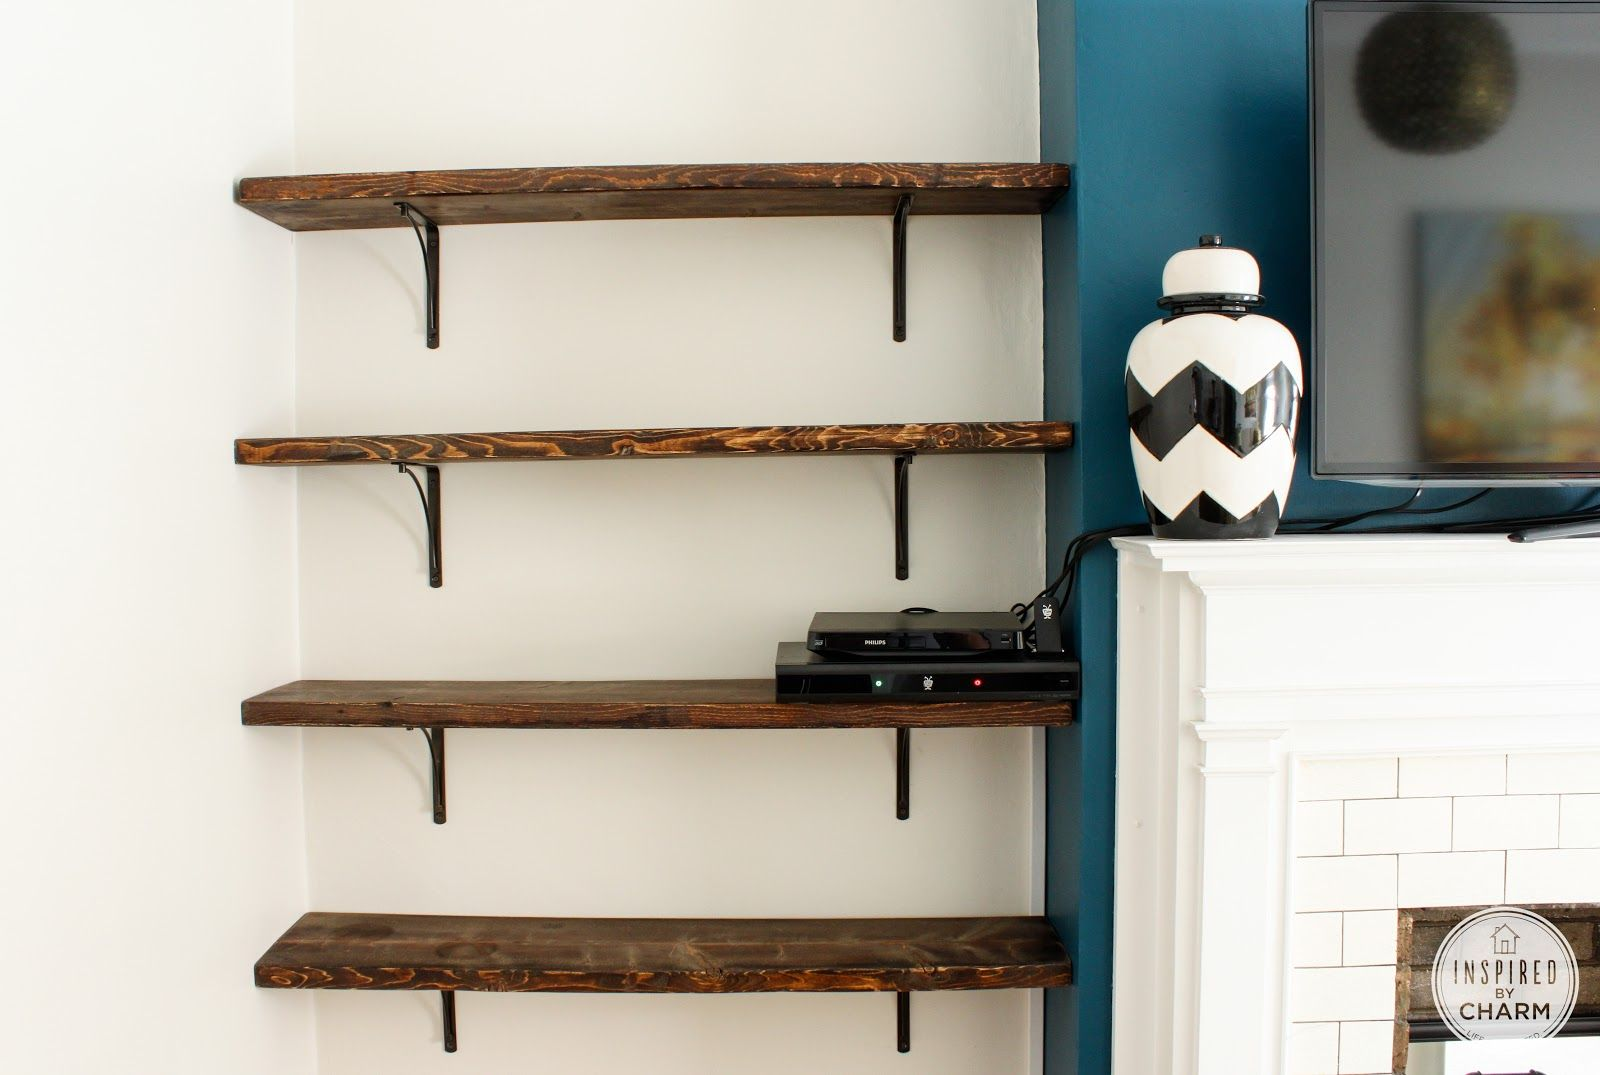 Likable Simple Wooden Wall Shelves Design With Exotic Natural Wood Textures  For Books Or Display Space   A Part Of 37 Creative And Unique Bookshelves  Design ...